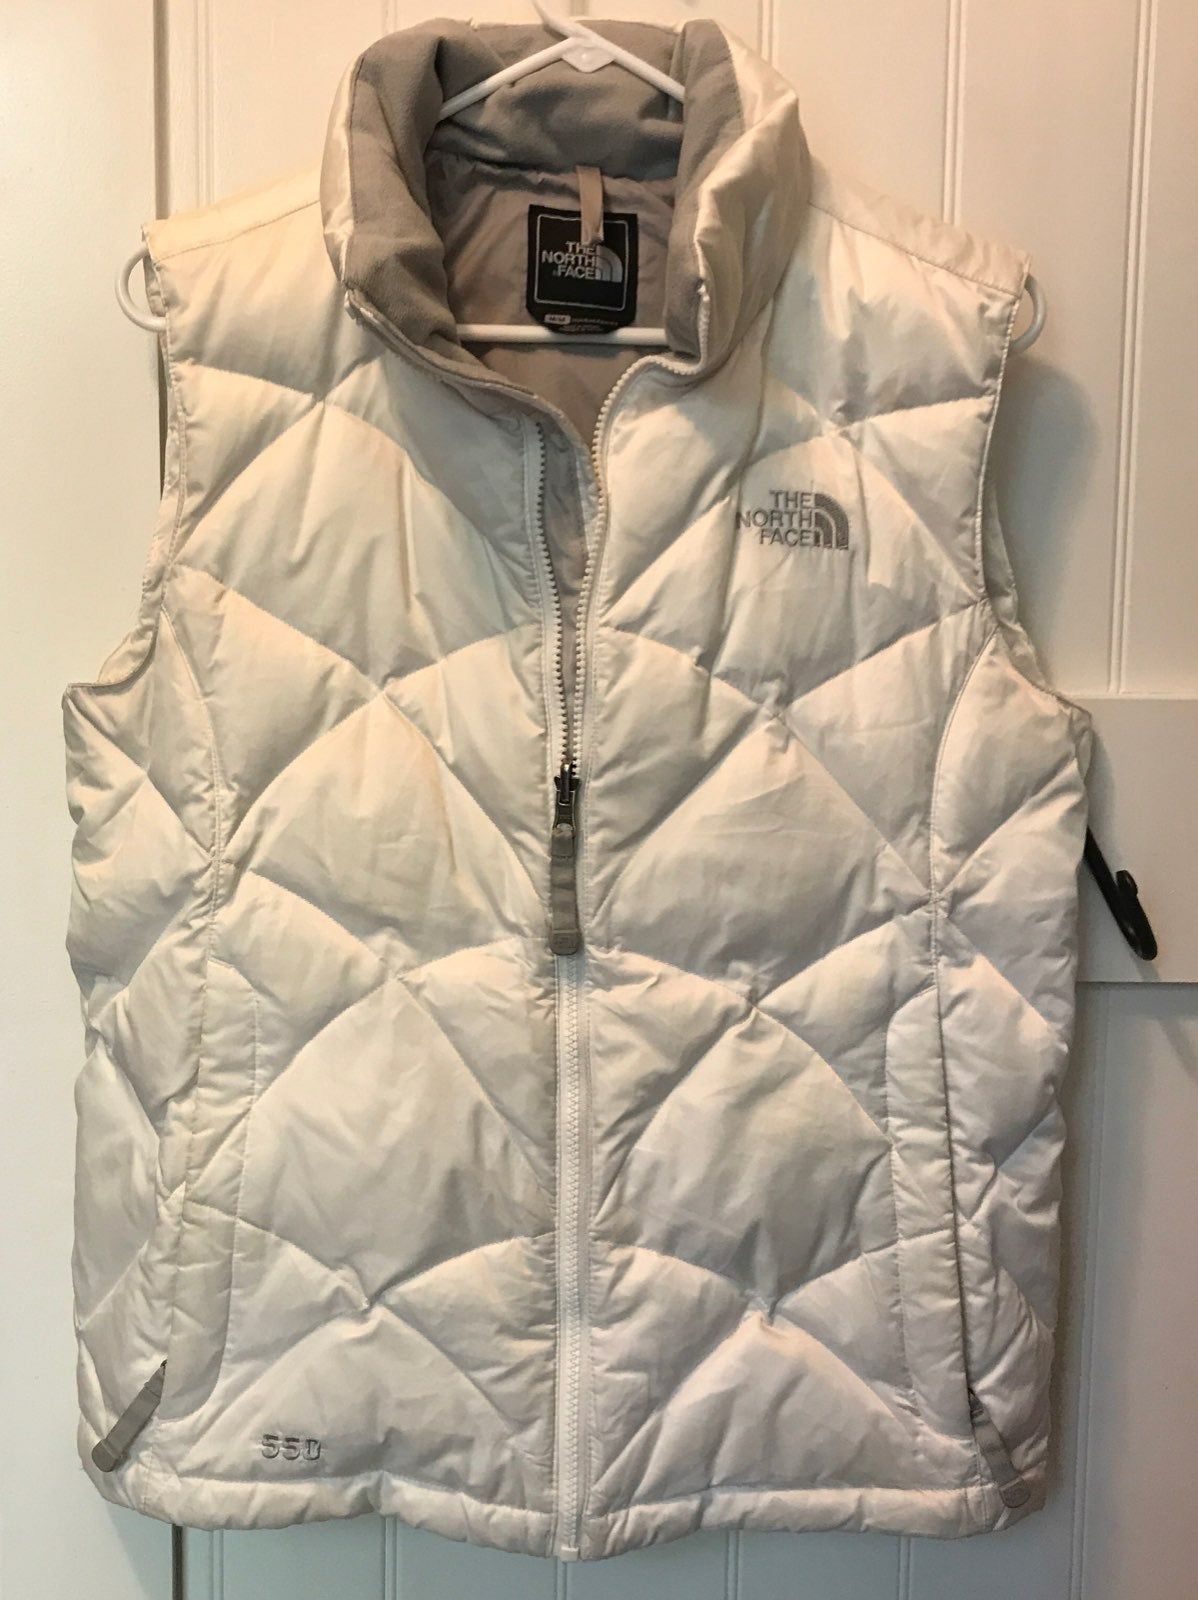 White The North Face 550 Puffer Vest Extremely Warm Other Than The Two Coffee Stains It S In Great Condition And Clean If Y Vest The North Face Puffer Vest [ 1600 x 1198 Pixel ]